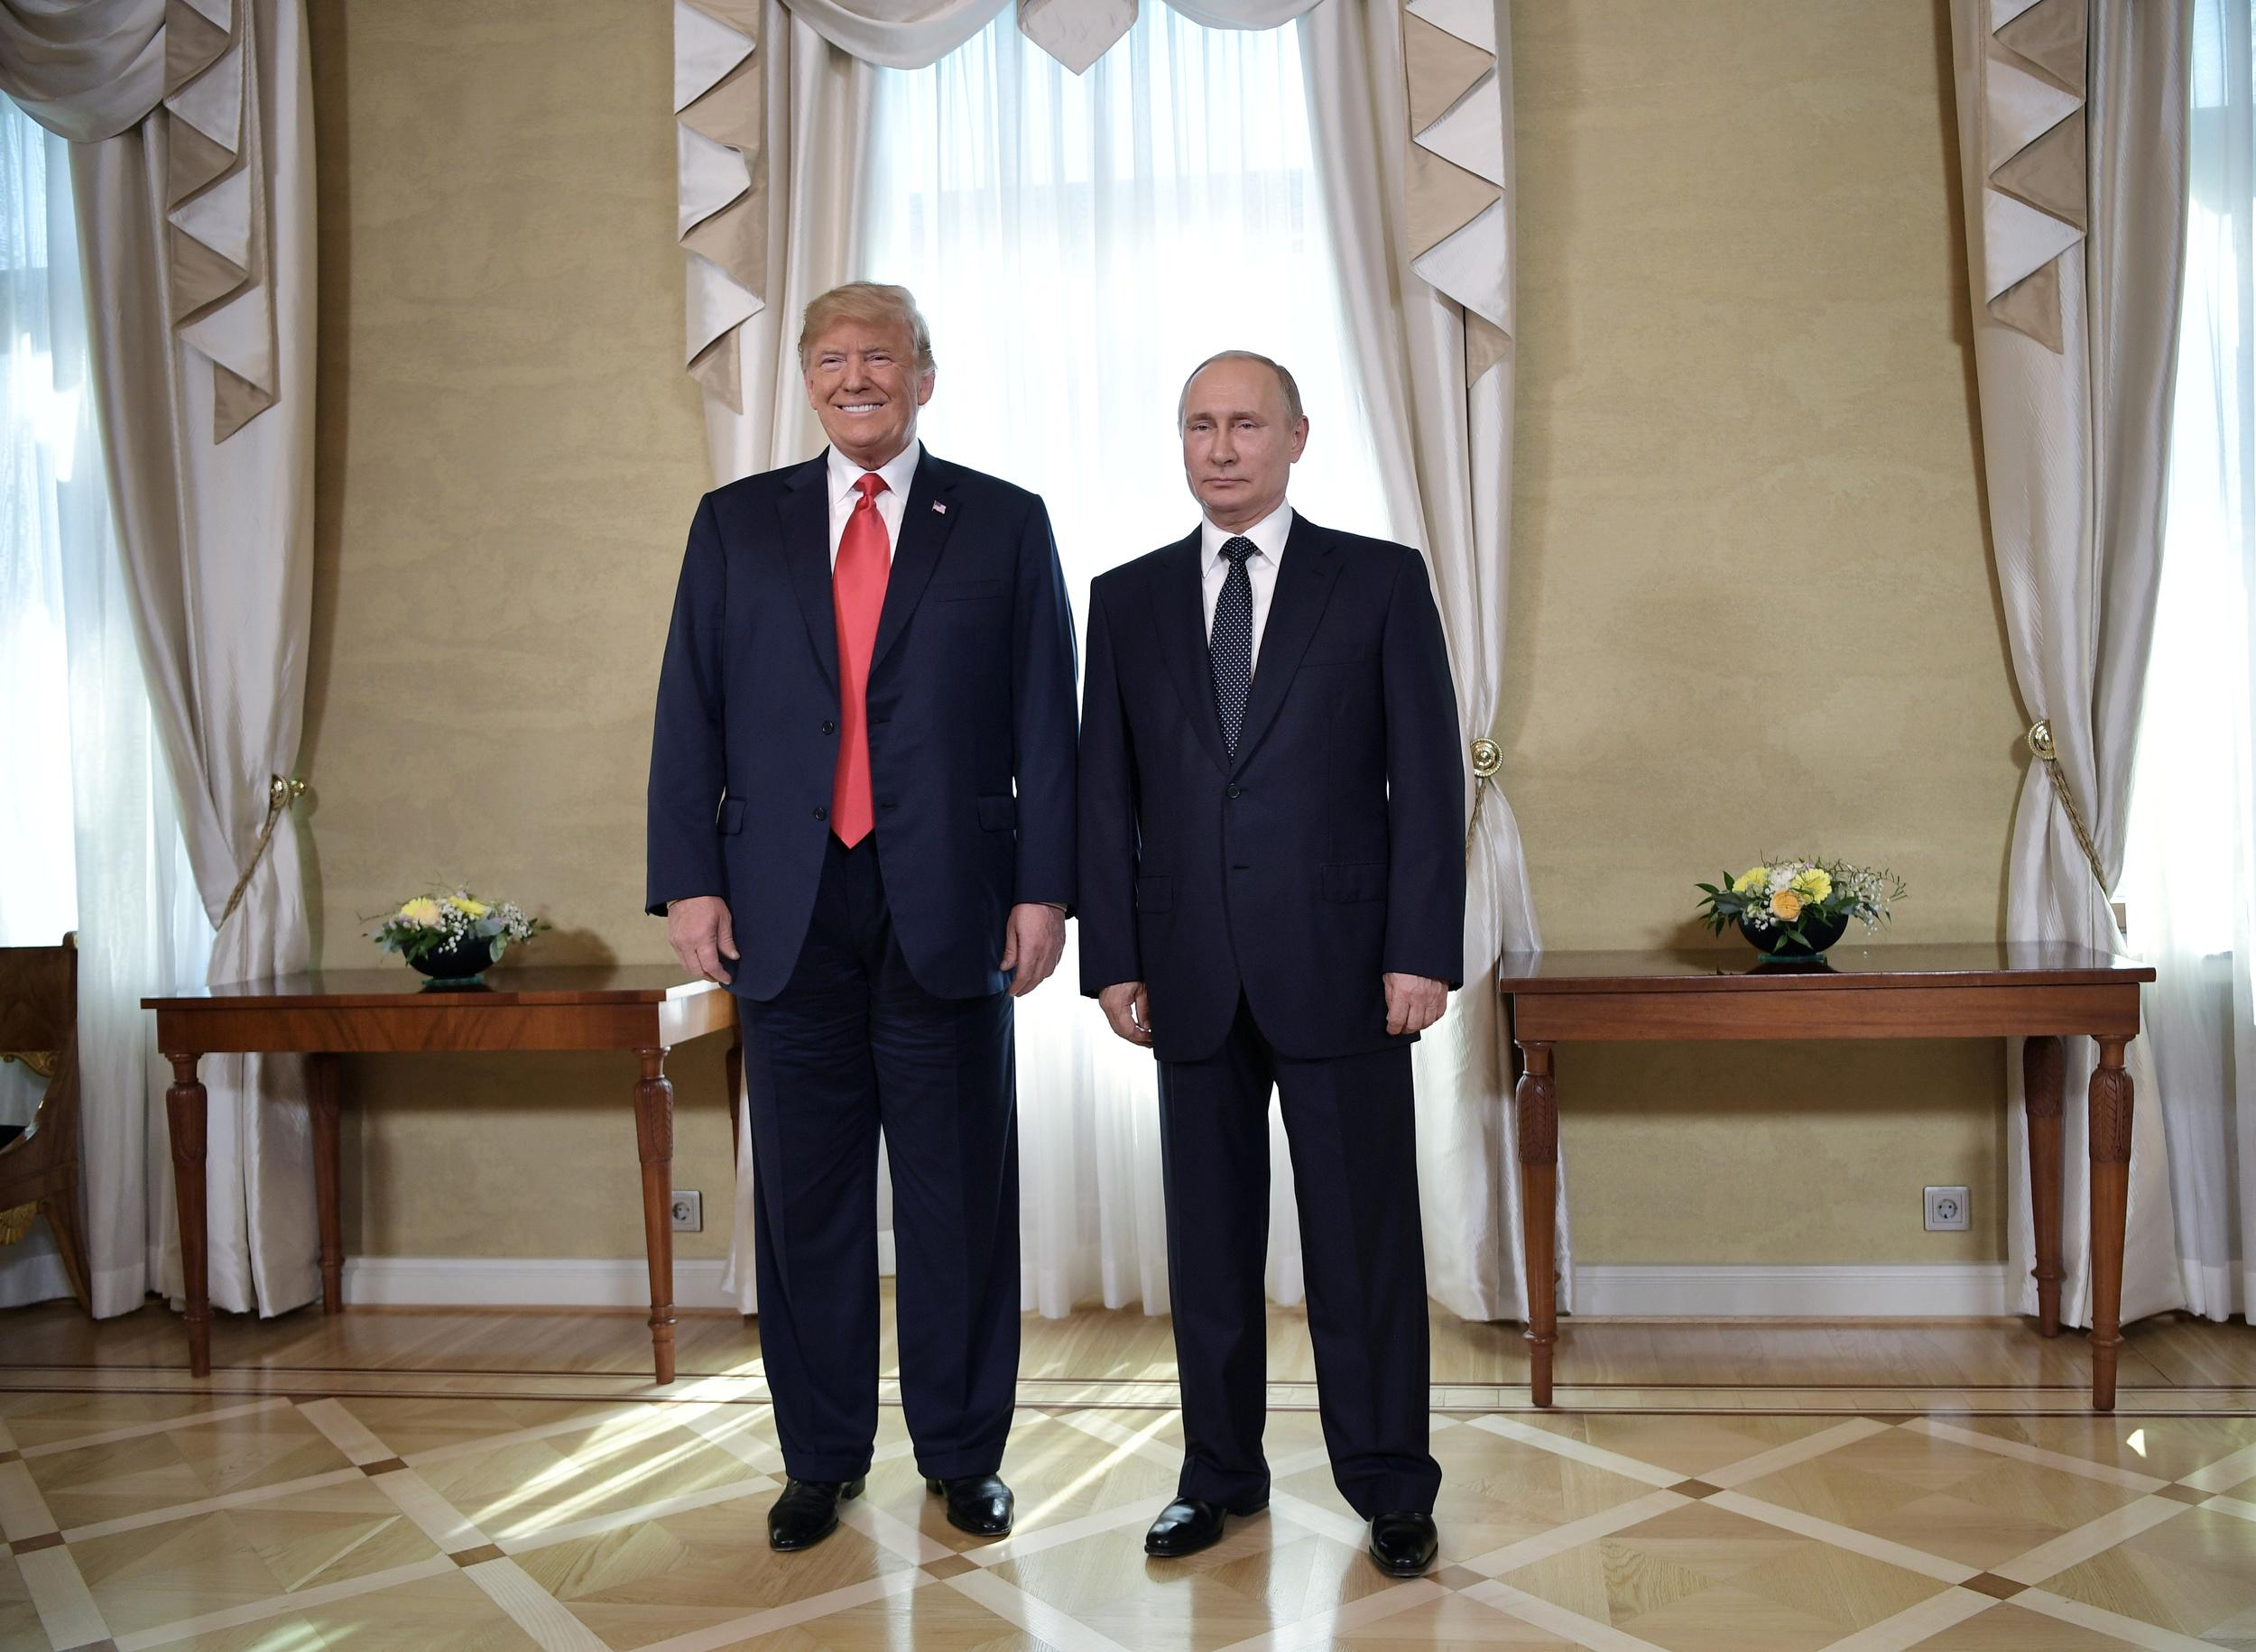 Russia's President Vladimir Putin (R) and U.S. President Donald Trump attend a meeting in Helsinki, Finland July 16, 2018. Sputnik/Alexei Nikolsky/Kremlin via REUTERS ATTENTION EDITORS - THIS IMAGE WAS PROVIDED BY A THIRD PARTY.